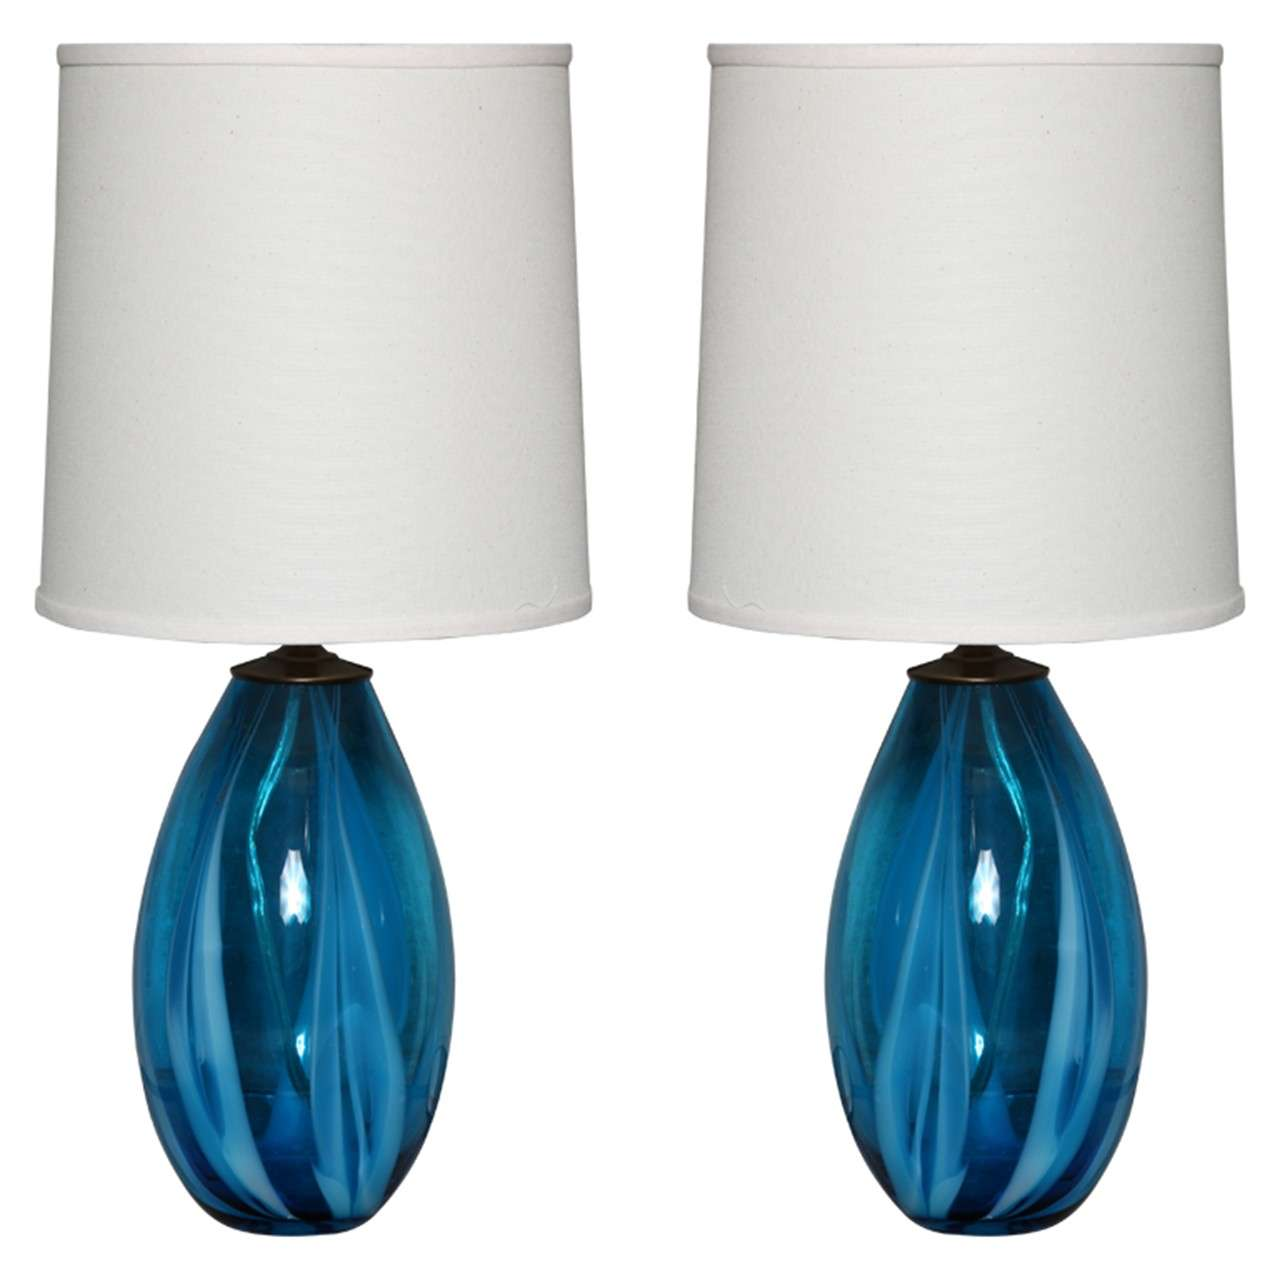 pair of blue murano glass table lamps at 1stdibs. Black Bedroom Furniture Sets. Home Design Ideas